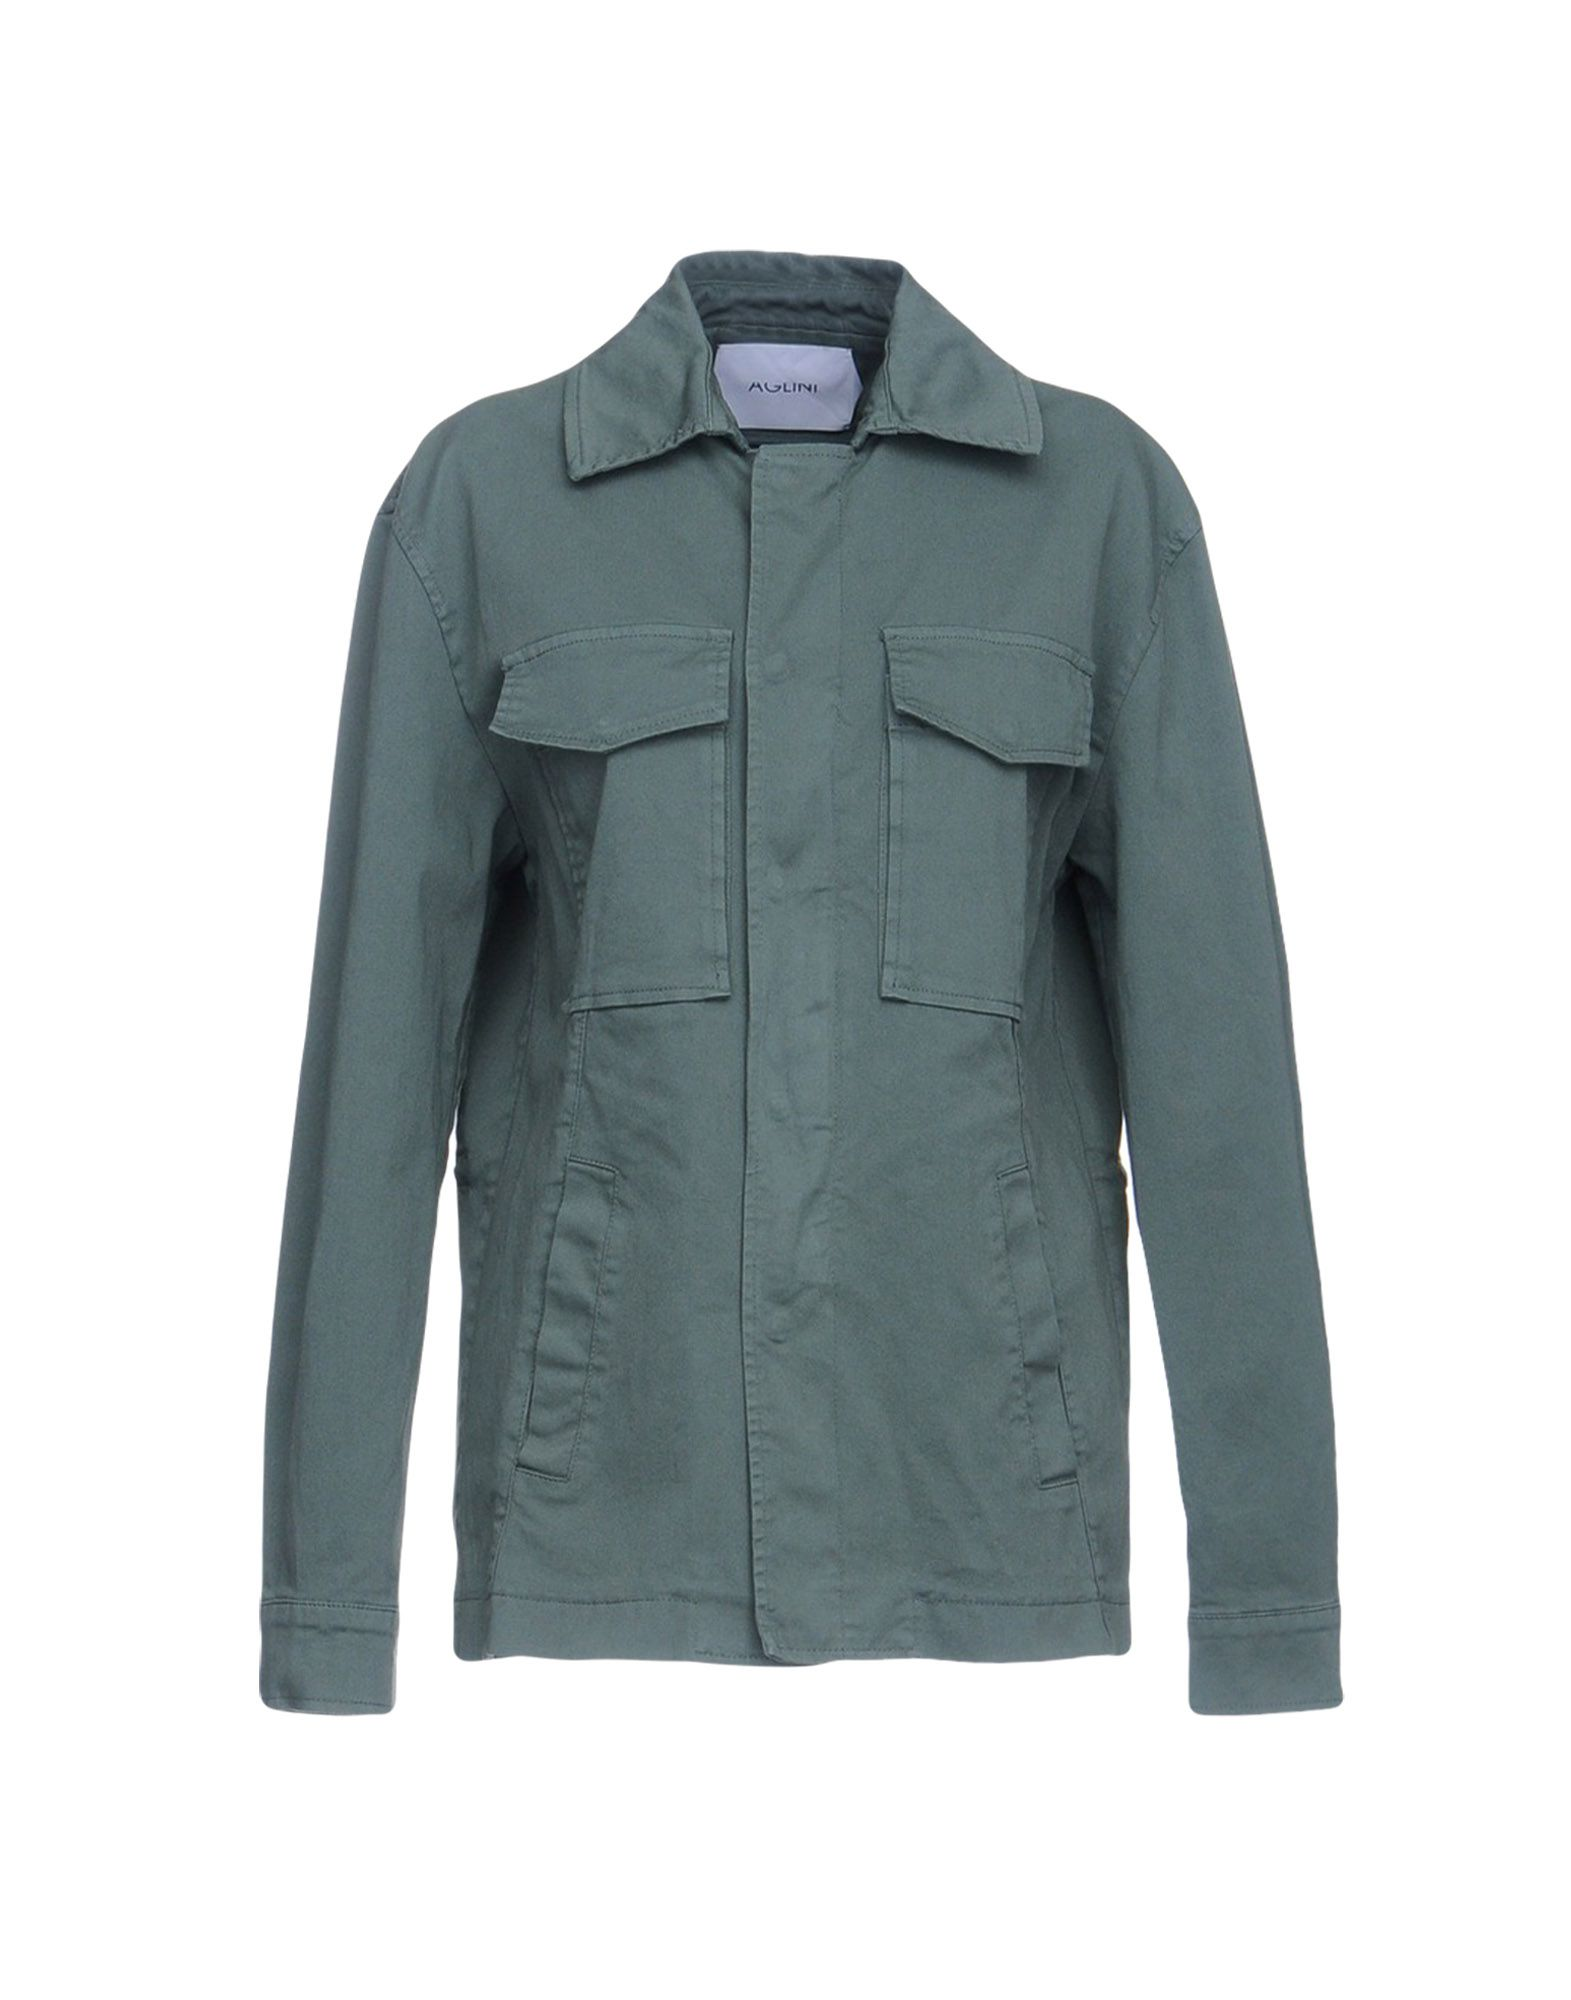 AGLINI Jacket in Military Green